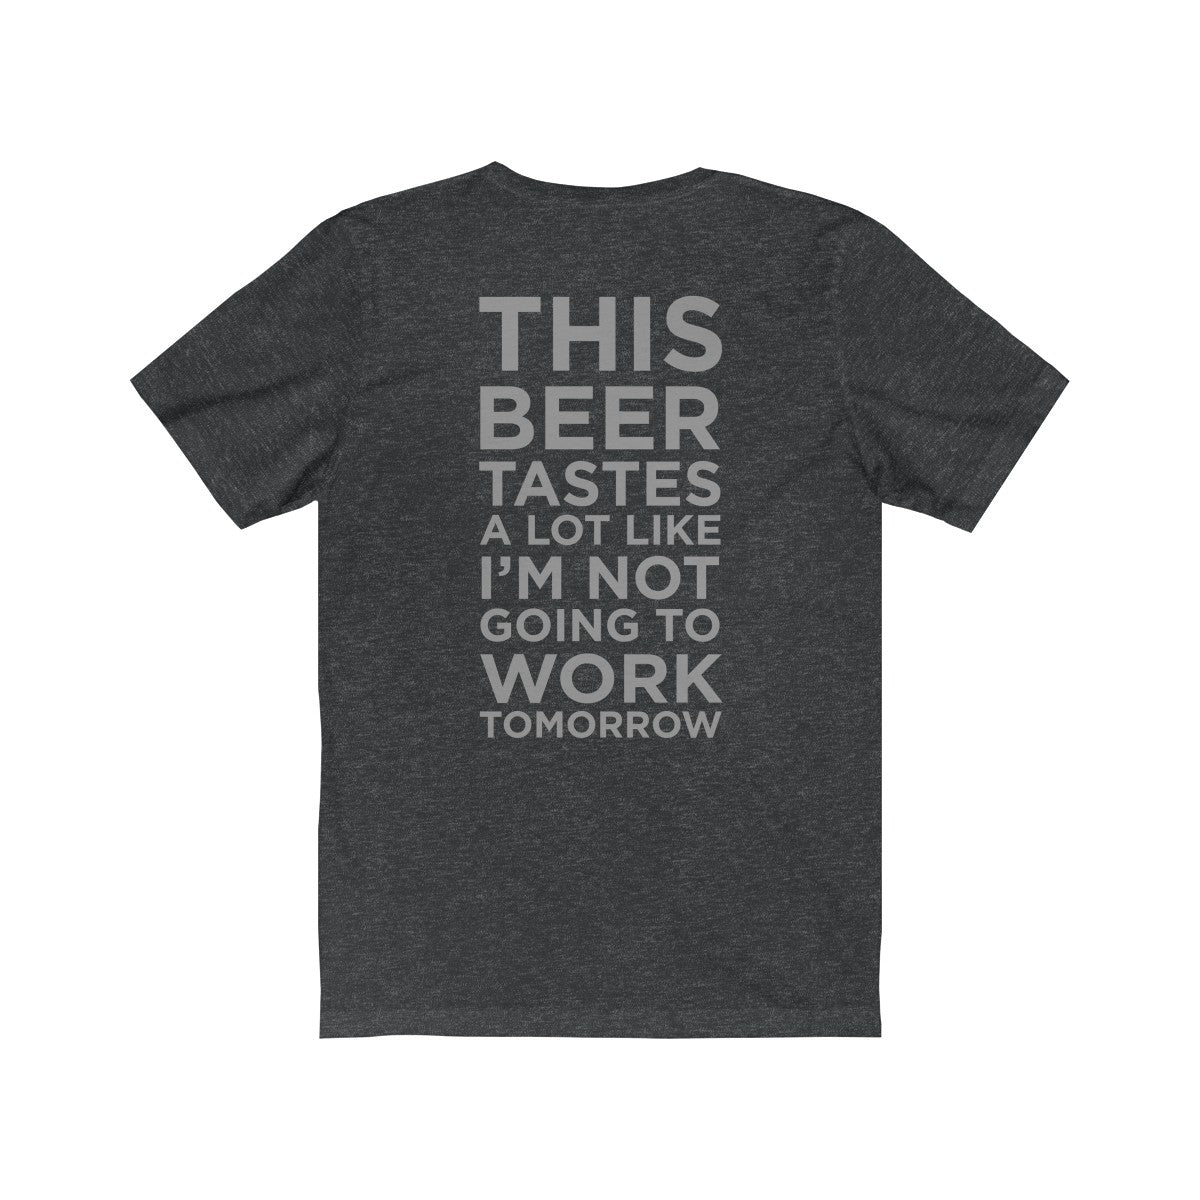 TapRoomGear.com - Not Going to Work T-Shirt